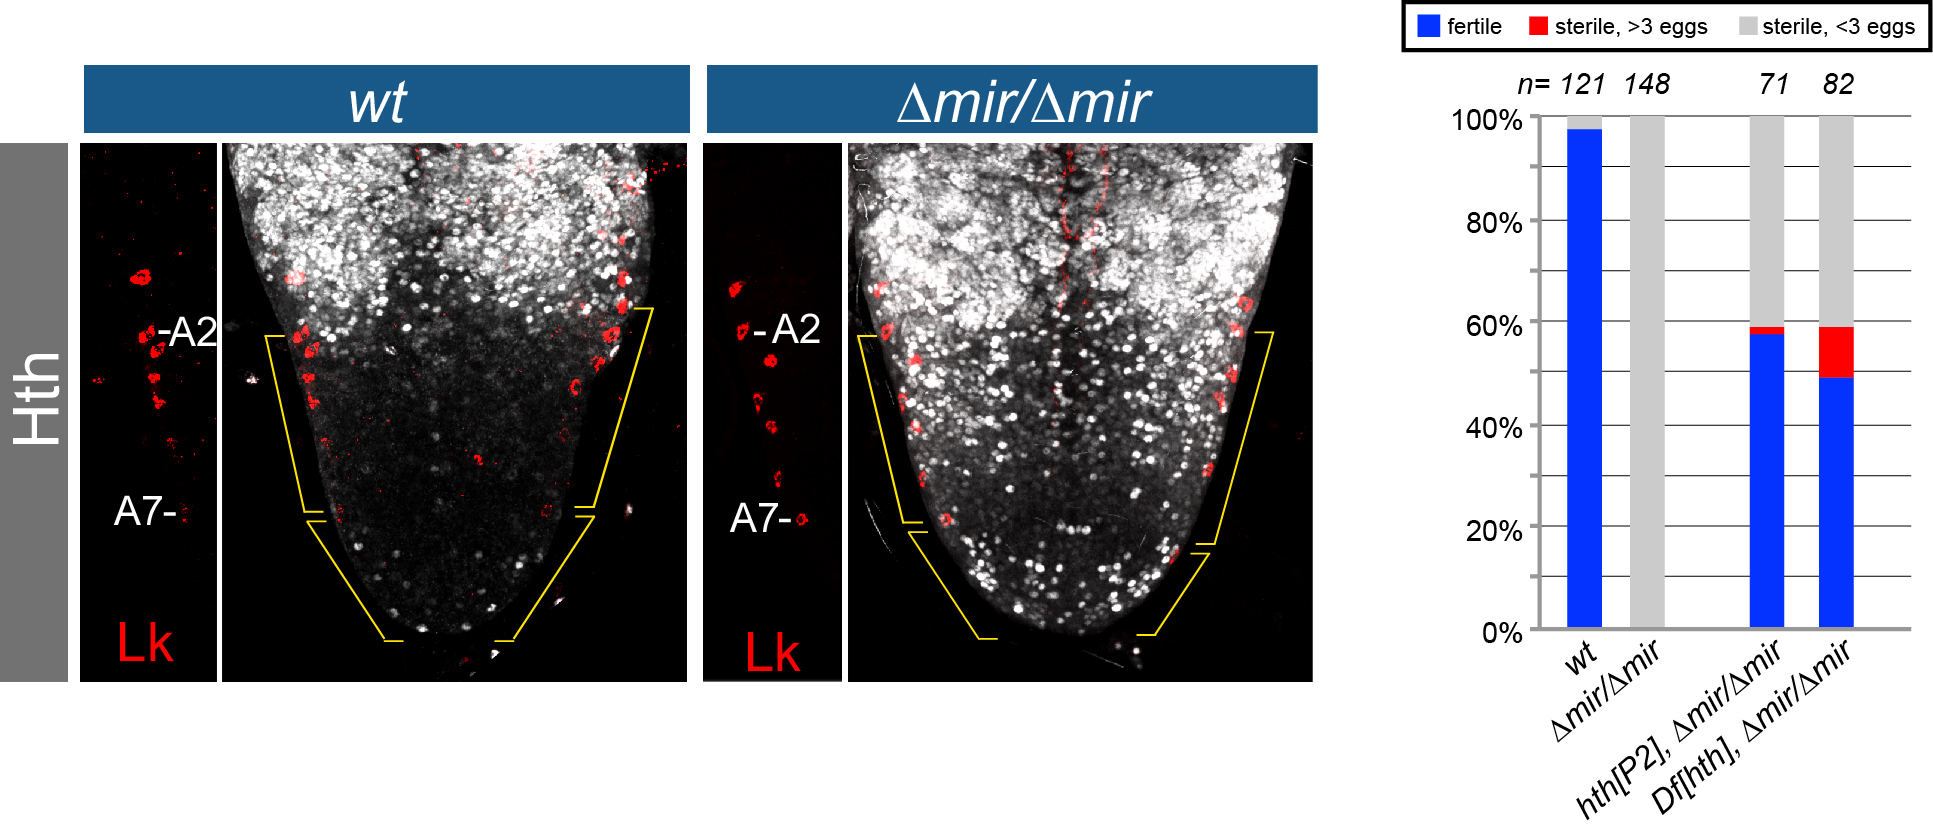 Figure 2. Stringent in vivo target regulation by a neural miRNA. (Left) Shown are abdominal ventral nerve cords in wildtype and knockout of mir-iab-4/8 (∆mir) stained for Lk (to register segments) and for the miRNA target Hth. There is massive derepression in the miRNA knockout. (Right) Behavioral defect in ∆mir is largely attributable to derepression of Hth. In contrast to wt, ∆mir almost completely fails to lay eggs after mating. Heterozygosity for hth, achieved by two different alleles, strongly rescues this defect.